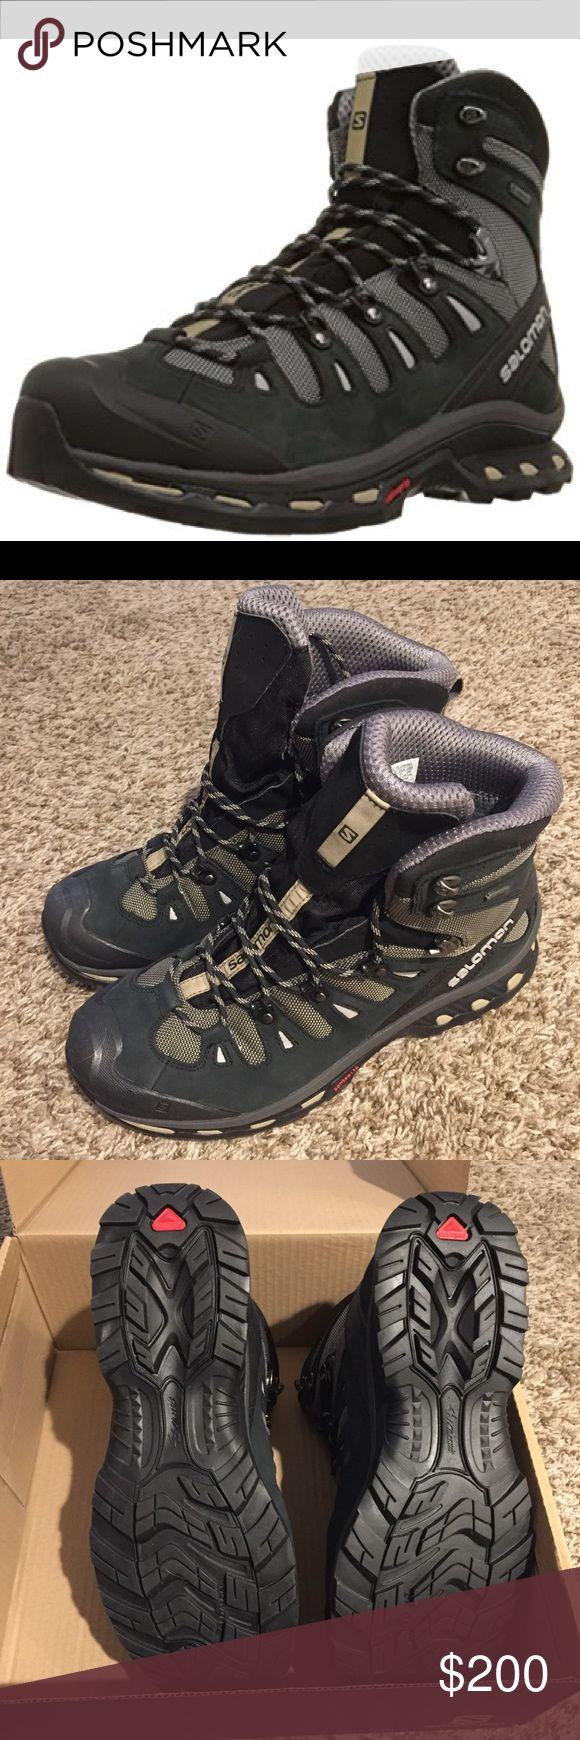 NEW Salomon Quest 4D 2 GTX Men's Hiking Boots BRAND NEW Salomon Quest 4D 2 GTX - Men's Size 11 - Detroit/Black/Navajo color. Never worn, were given as a gift and forgotten to return due to moving. Salomon Shoes Boots